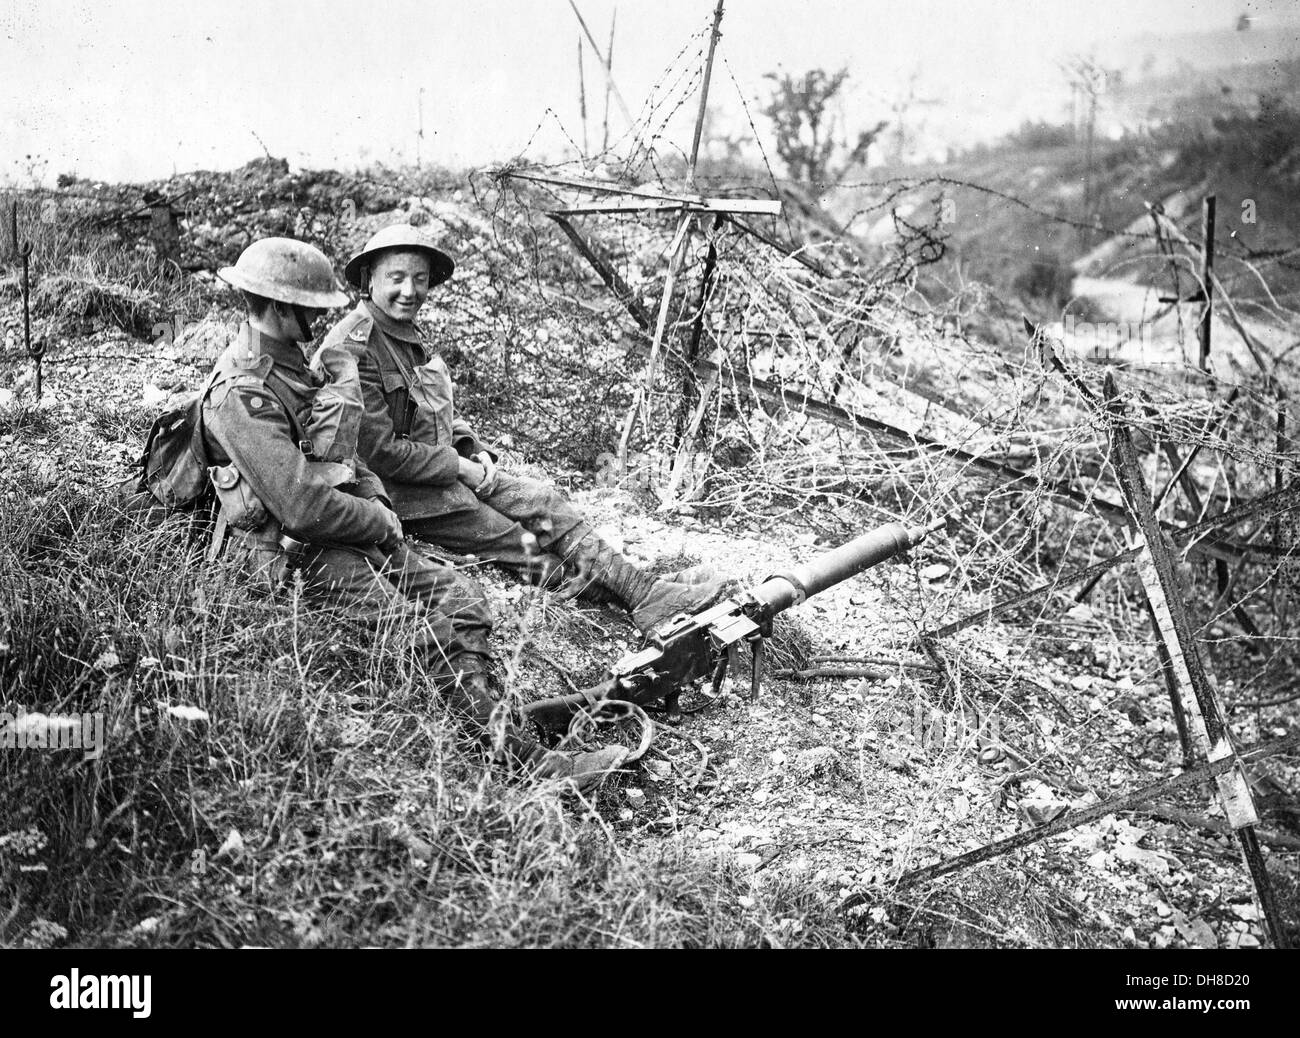 Great War trench warfare. British soldiers sit on a captured German position amongst barbed wire entanglements and discarded gun - Stock Image